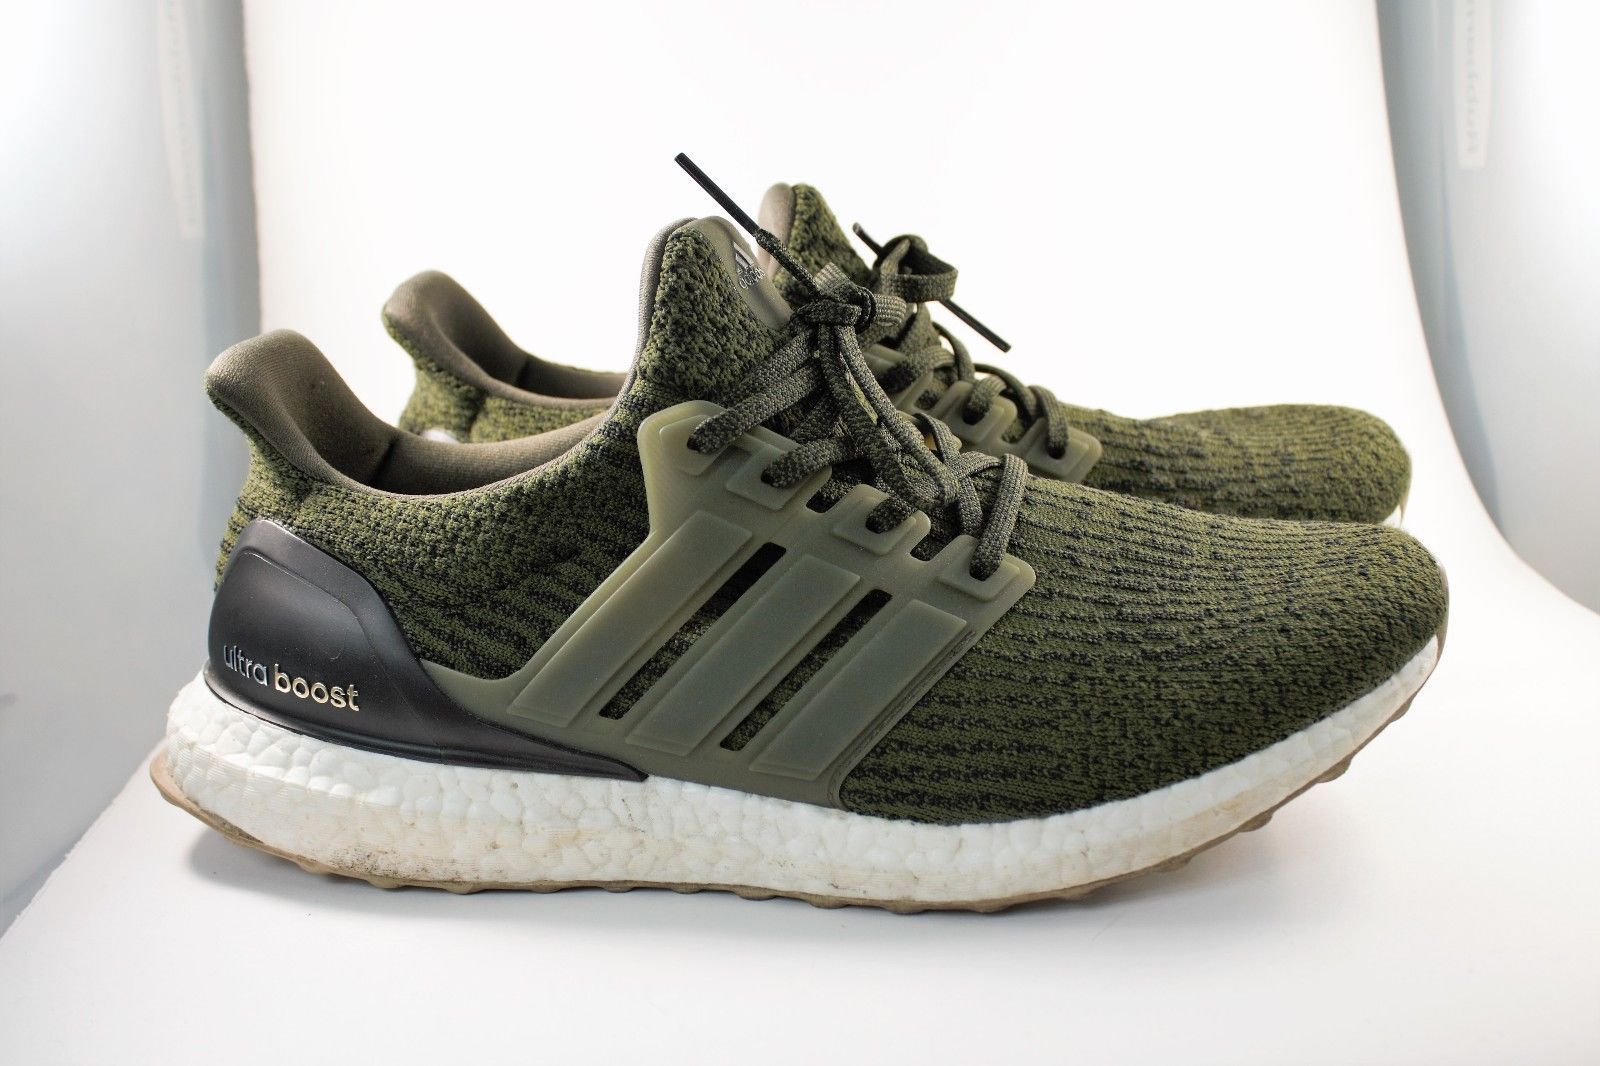 1f85c73a096 Details about Adidas Ultra Boost 3.0 Trace Olive Khaki 8.5 US S82018 ...